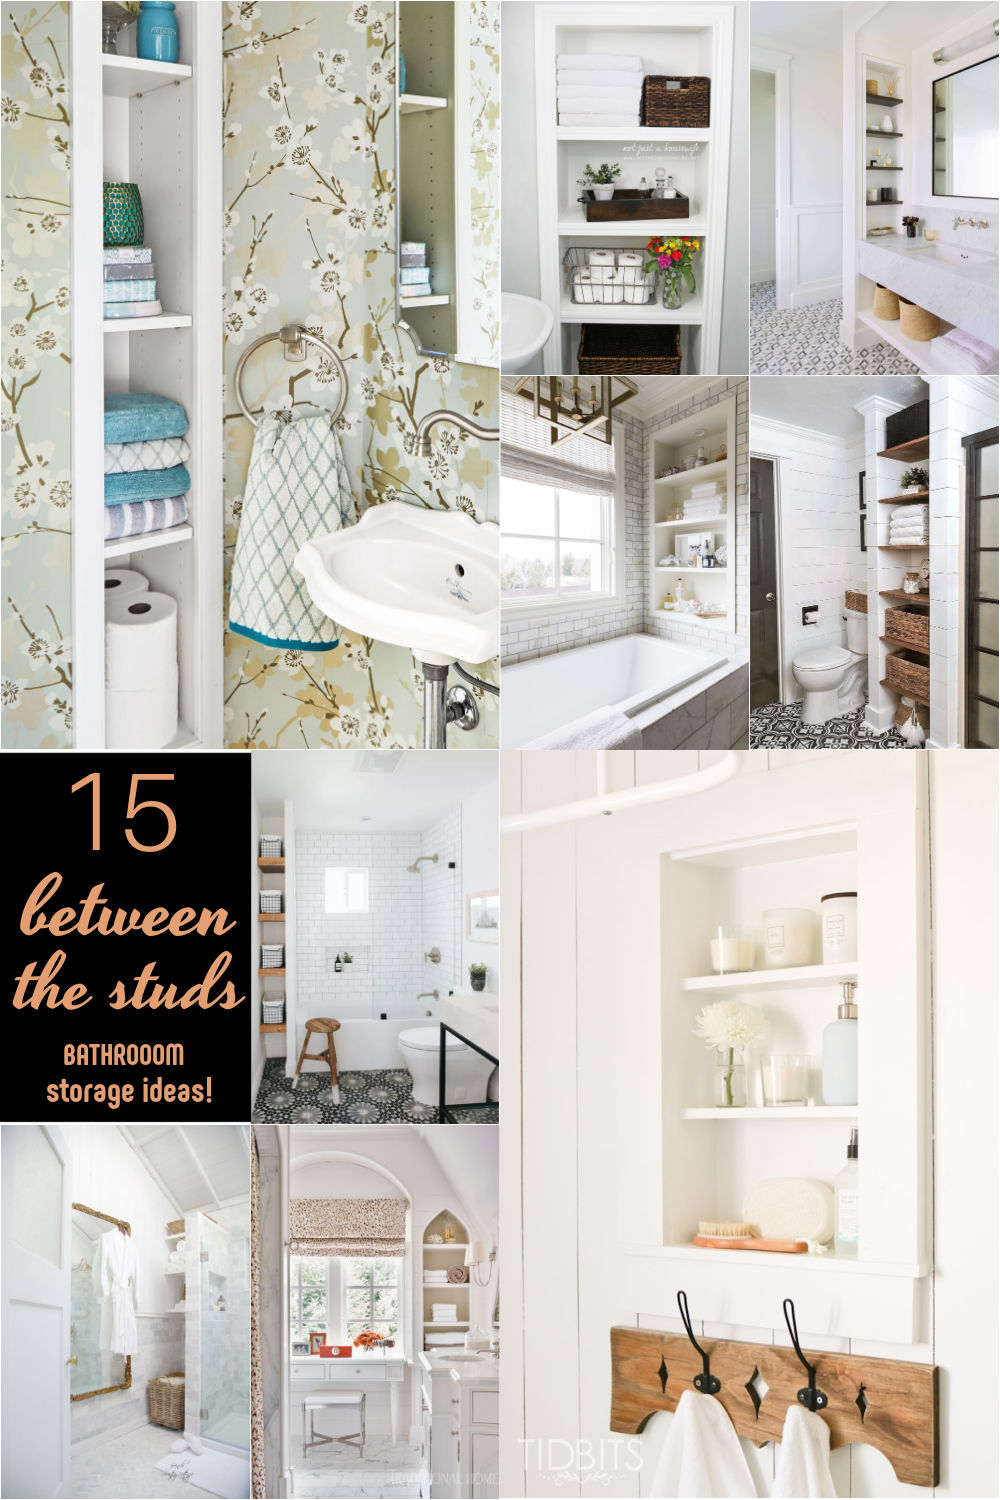 15 Between the Studs Bathroom Storage Ideas! Carve out space between the wall studs to increase storage space in a small bathroom.